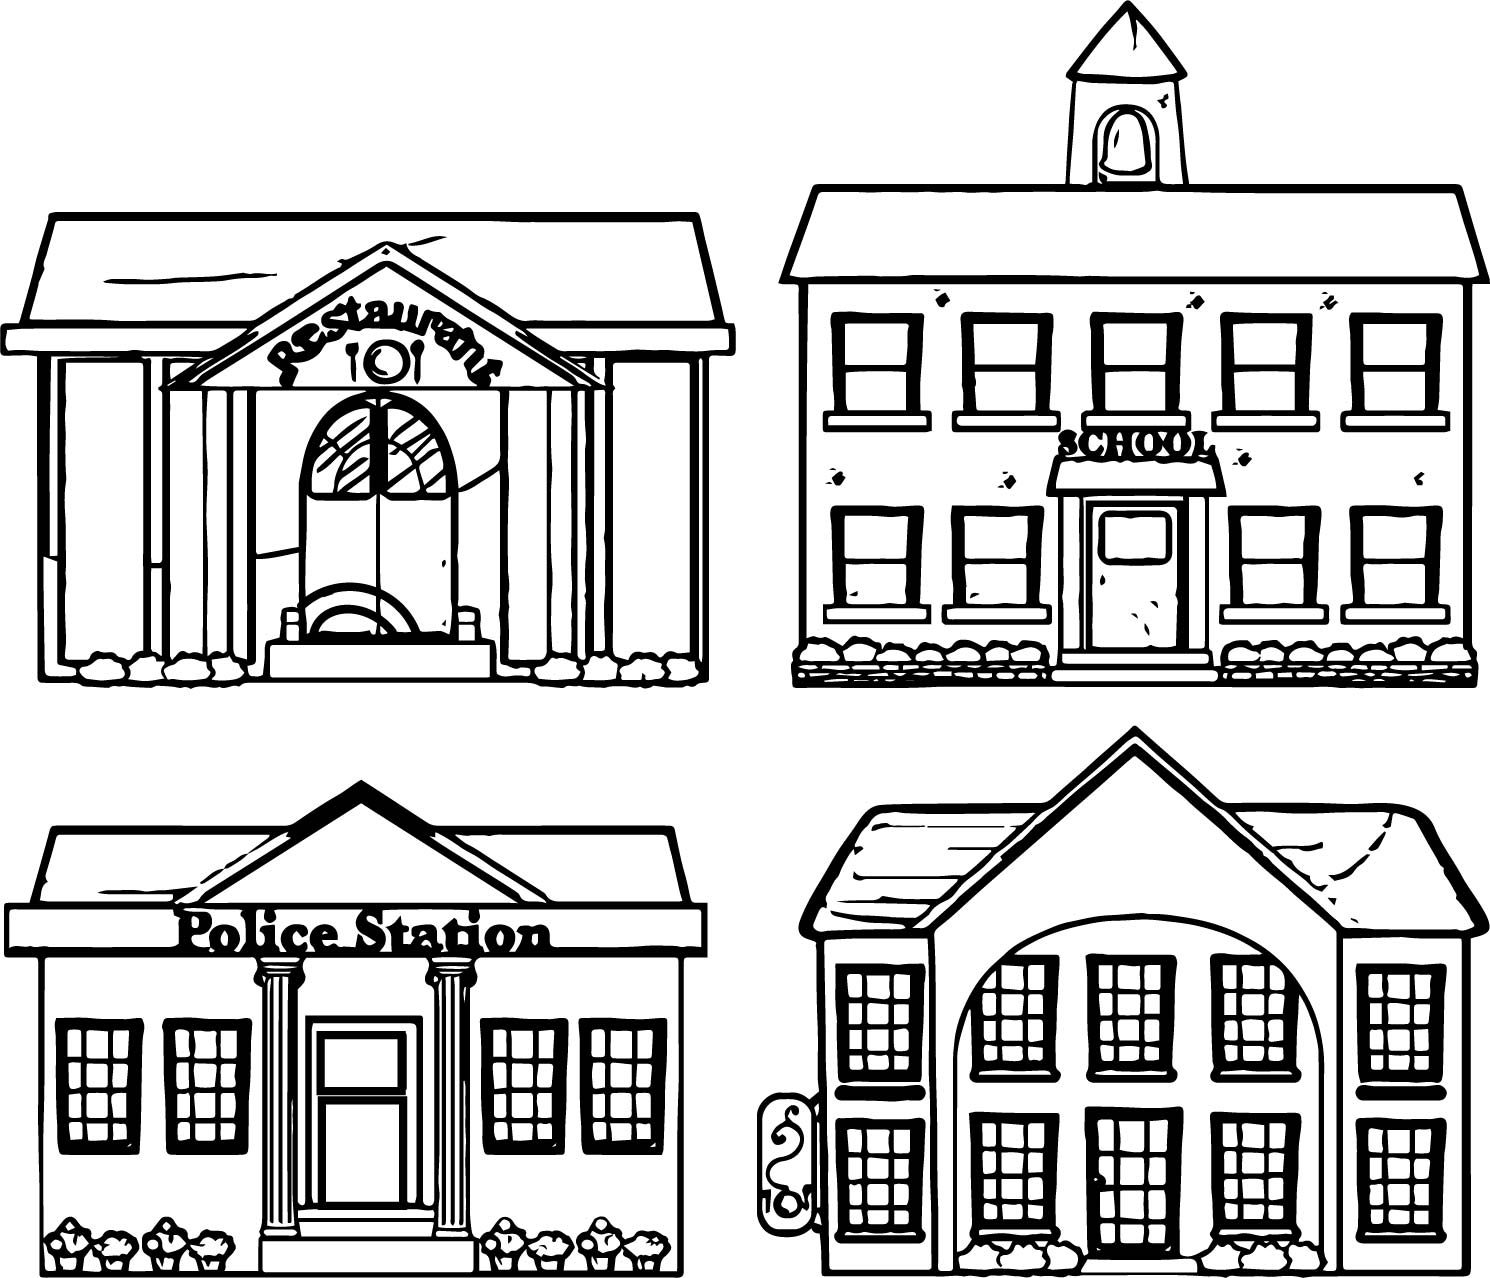 Coloring pages buildings ~ Restaurant School Police Building Coloring Page ...